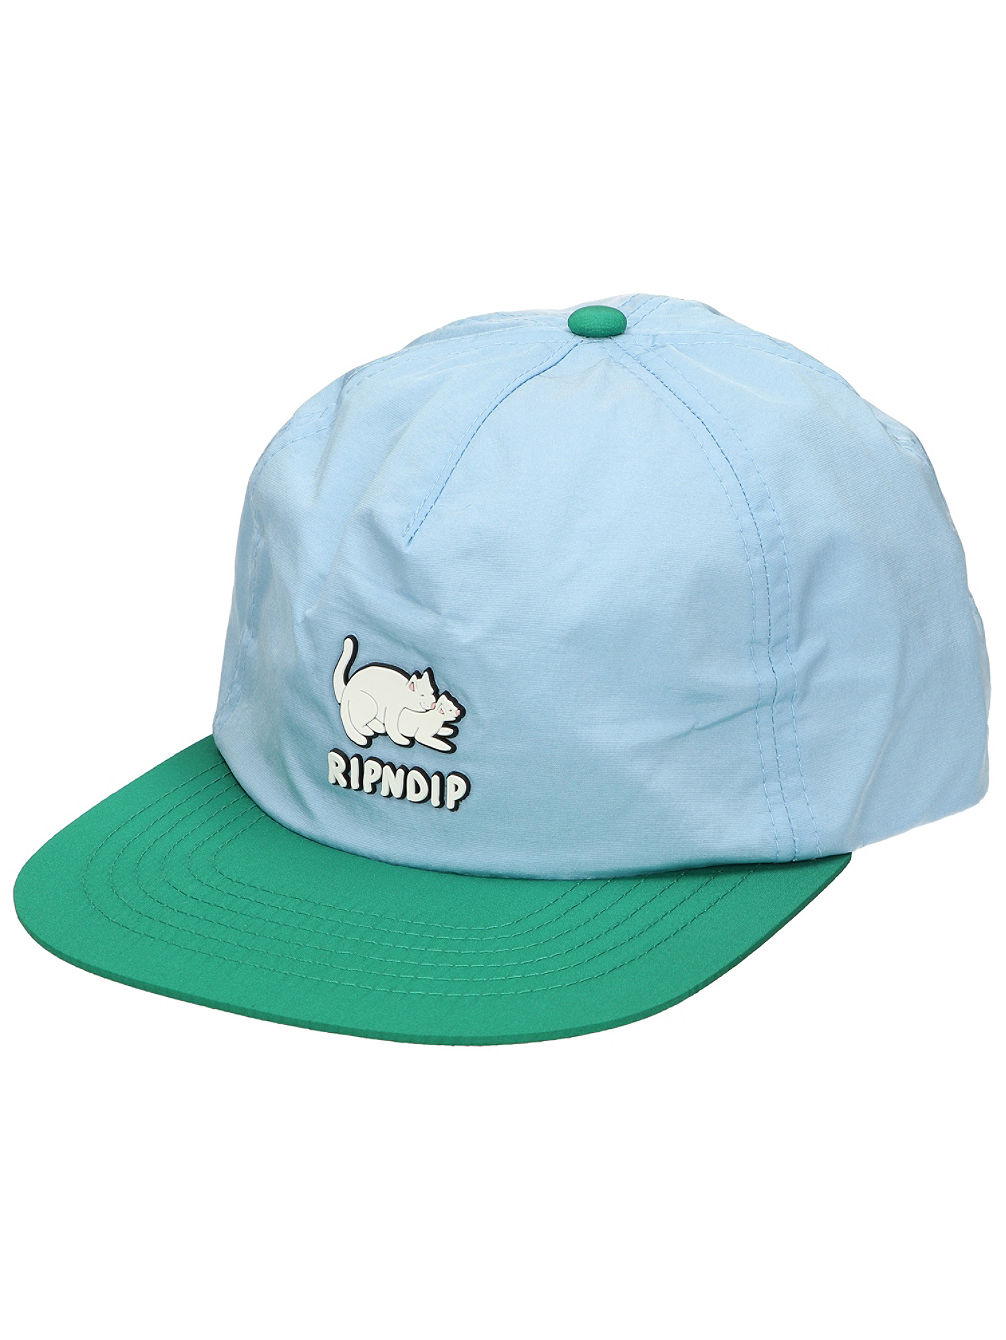 Two Nerms 5 Panel Cap